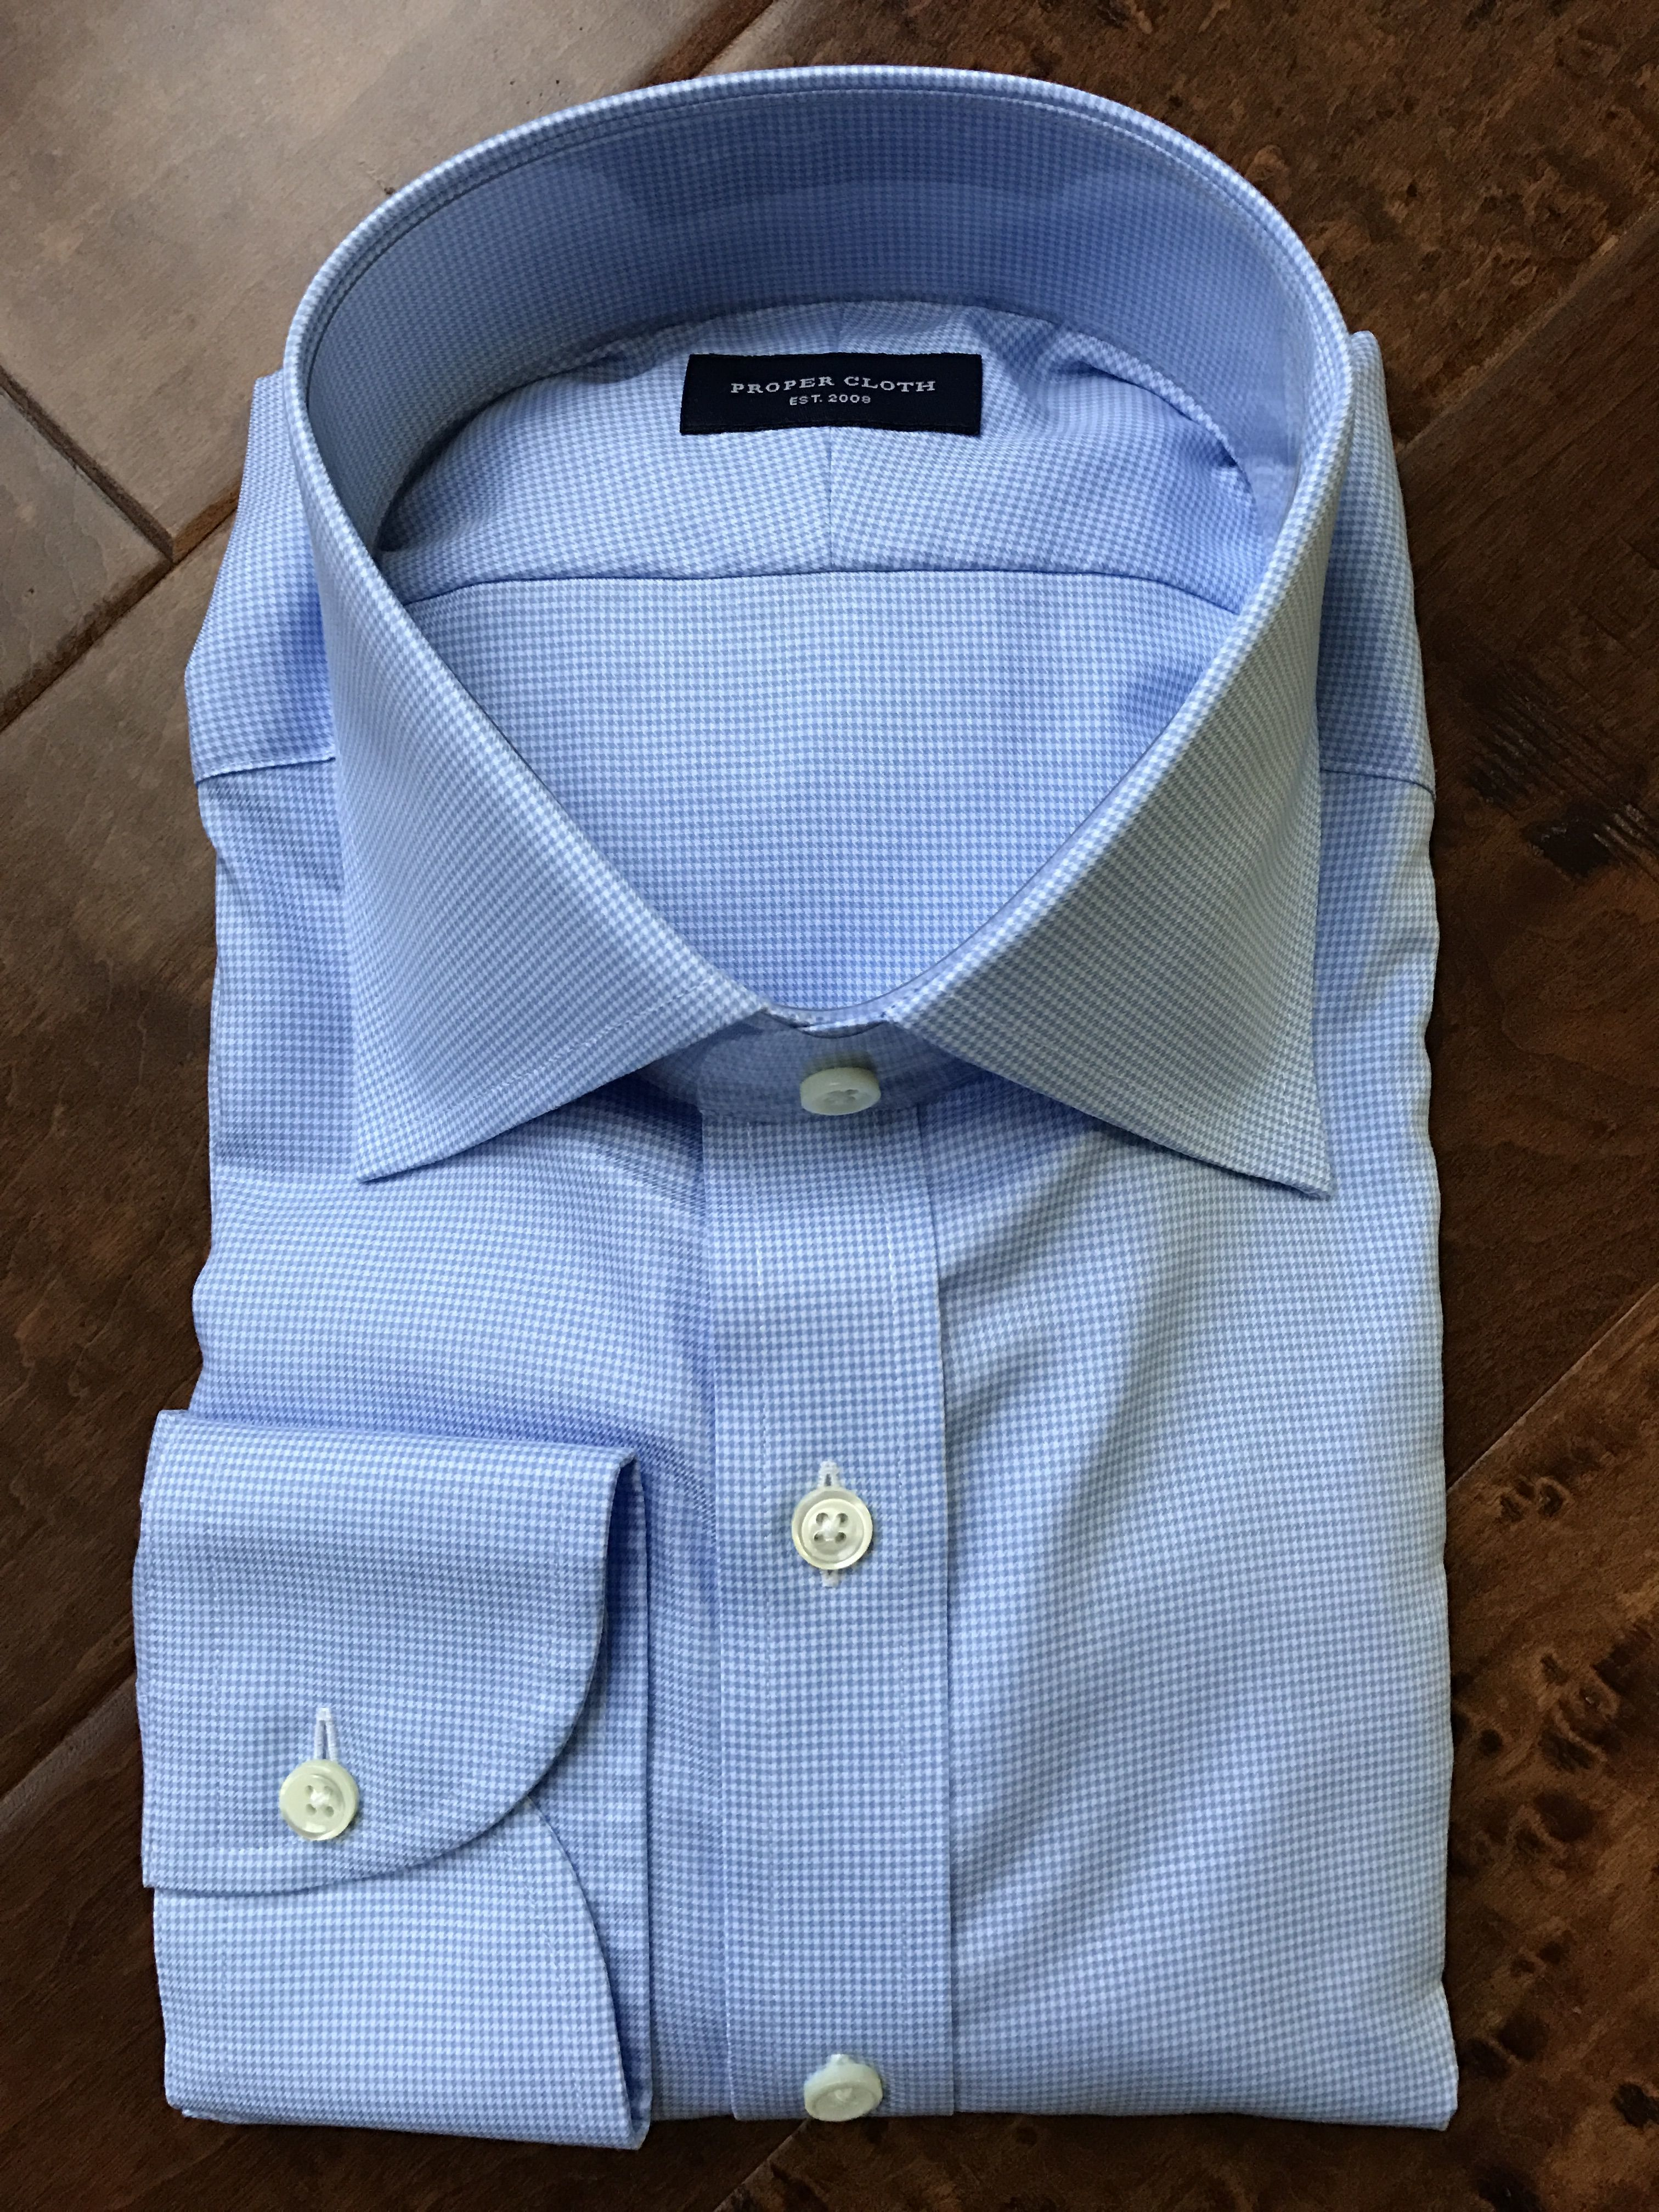 78ba59eb3bb New shirt. Took a chance on this fabric (Morris Light Blue  Wrinkle-Resistant Houndstooth) and I really love it.